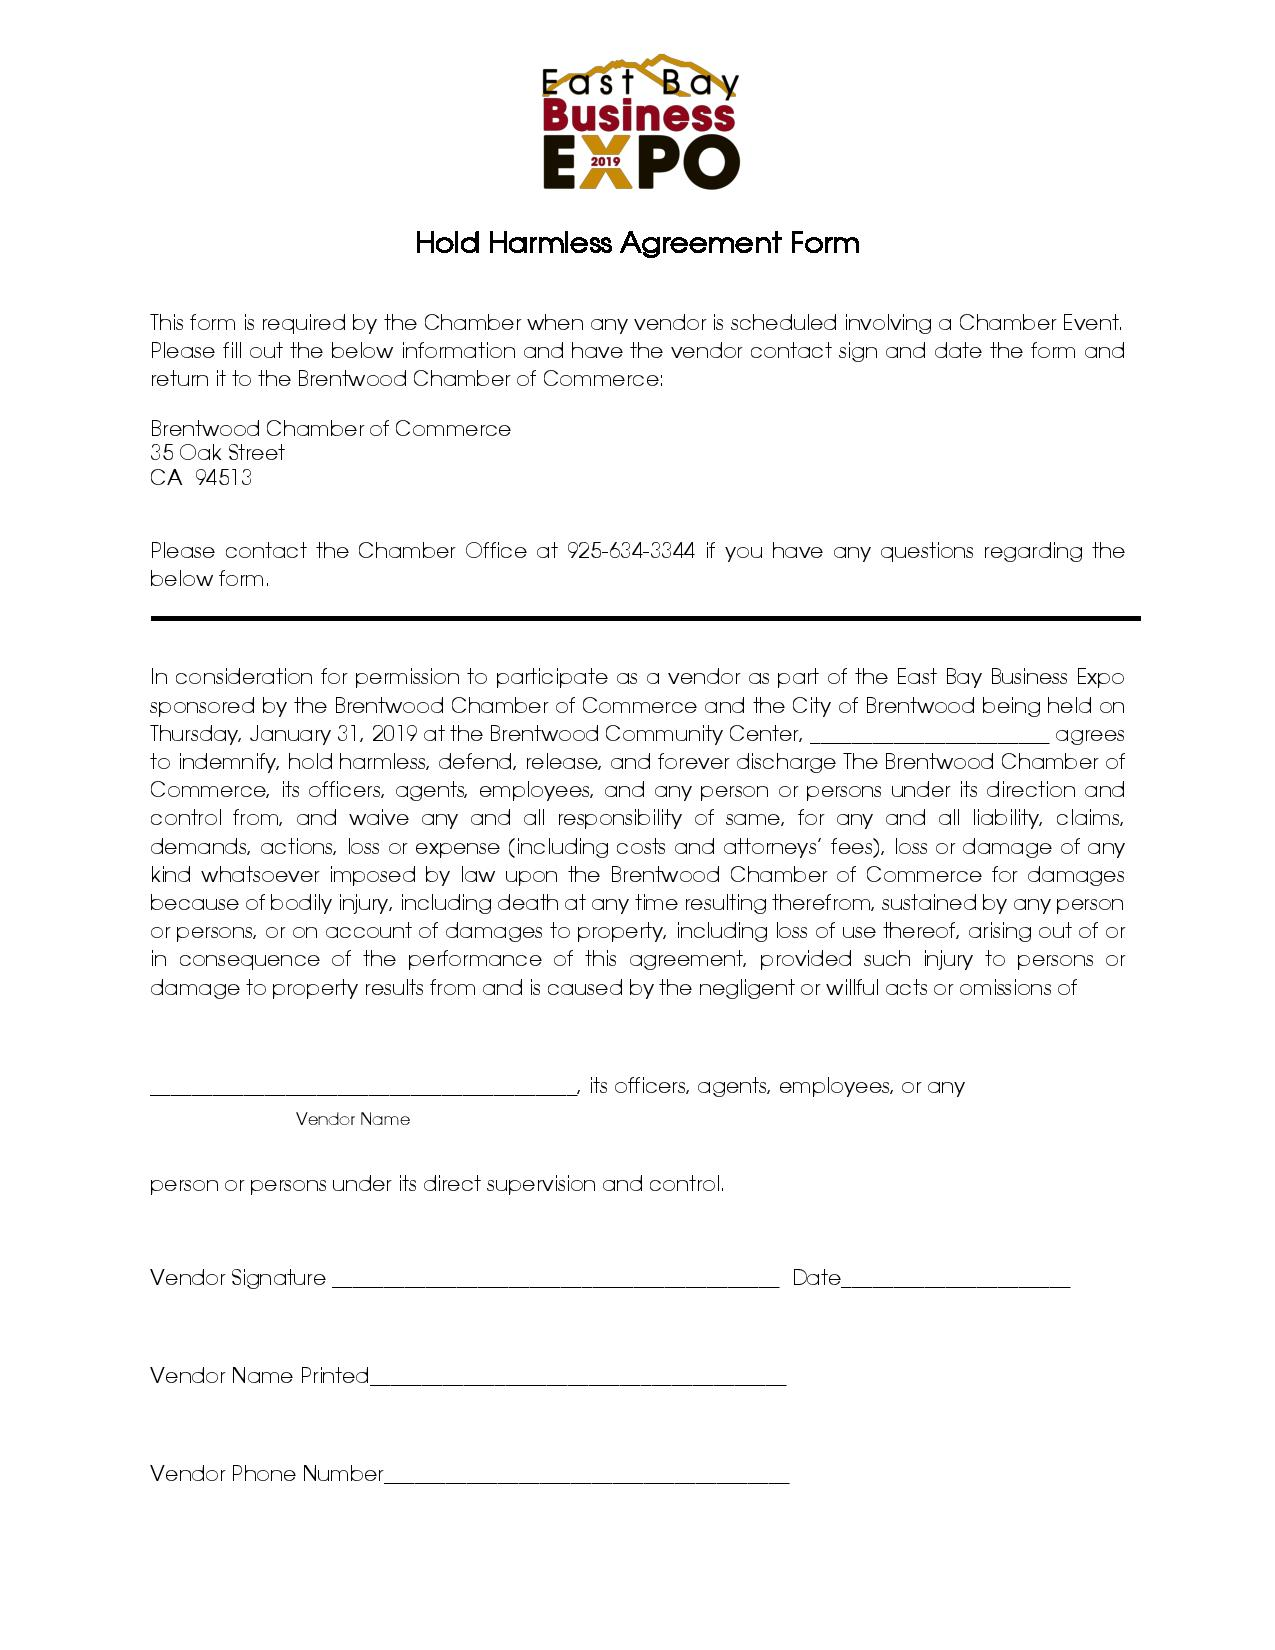 Hold-Harmless-Agreement-Form-10-16-18-page-001.jpg